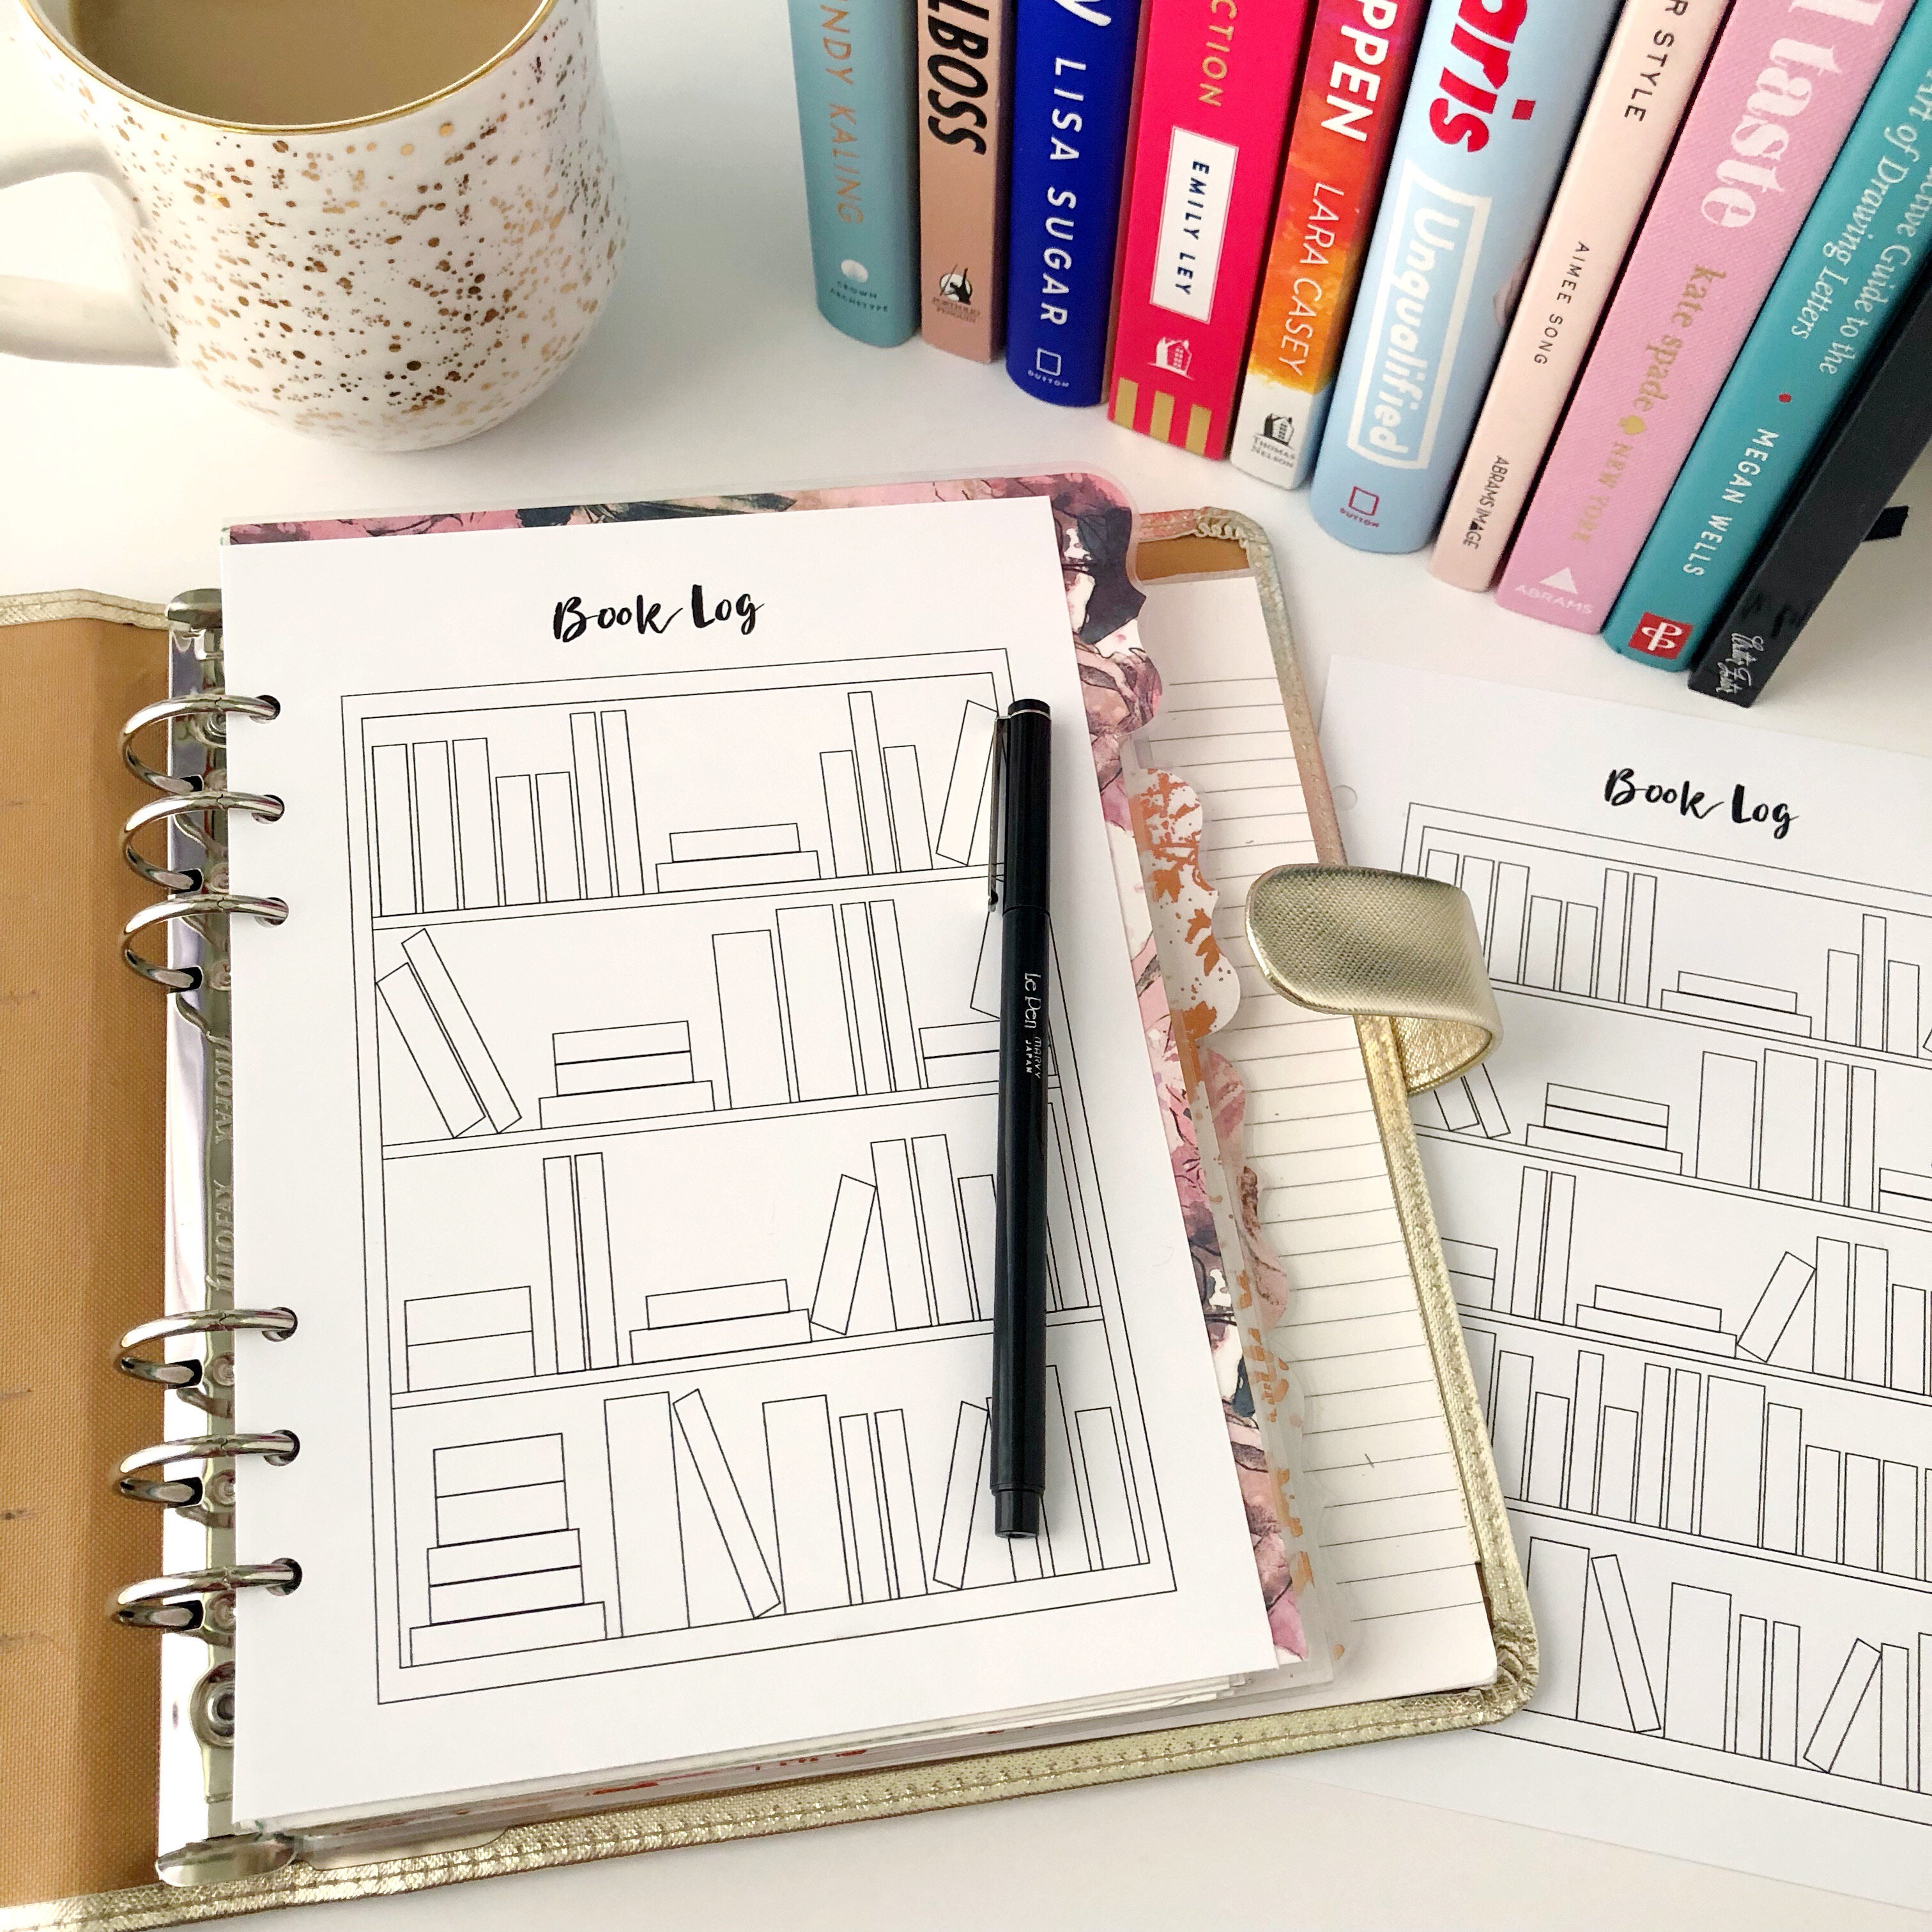 photograph about Book Log Printable known as Looking at Guide Log: Absolutely free A5 Planner Printable - Crimson Bows